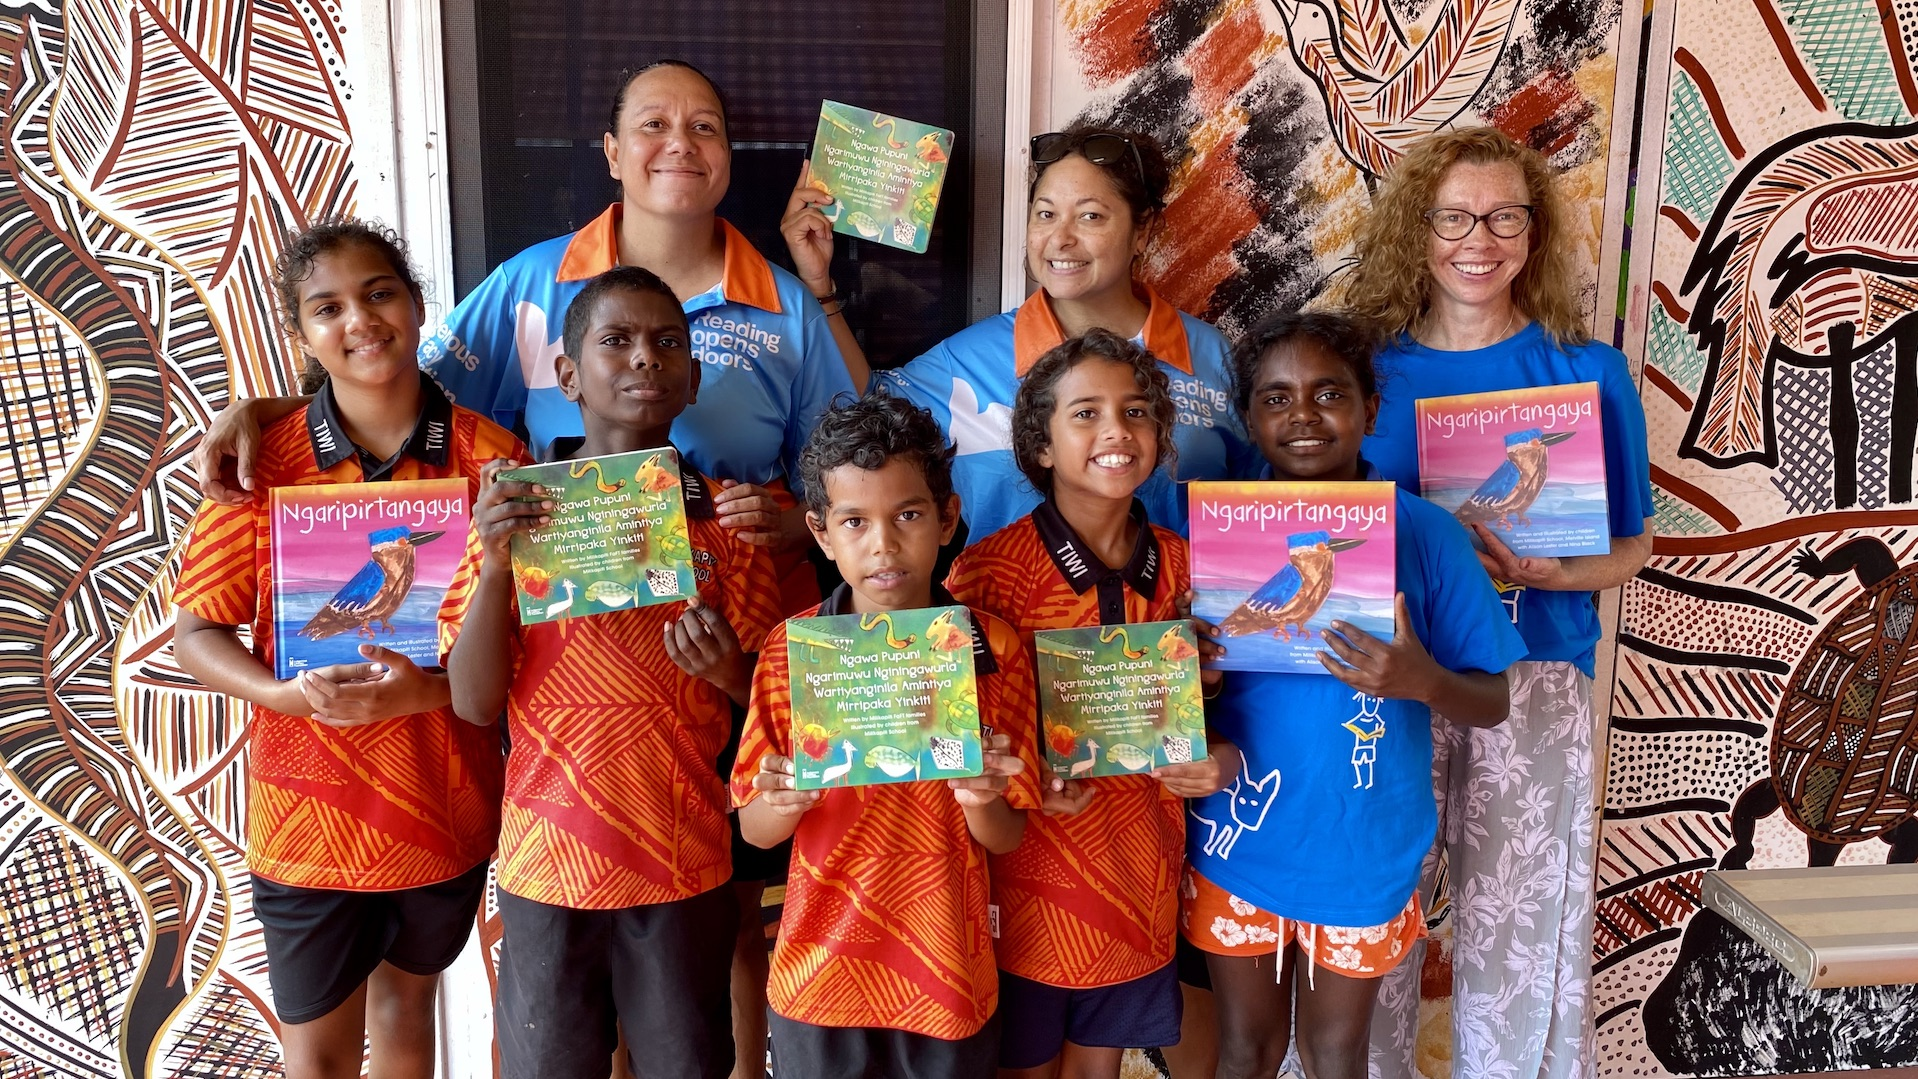 Tiwi Islands Book Launch Part 2:  Into the Classroom